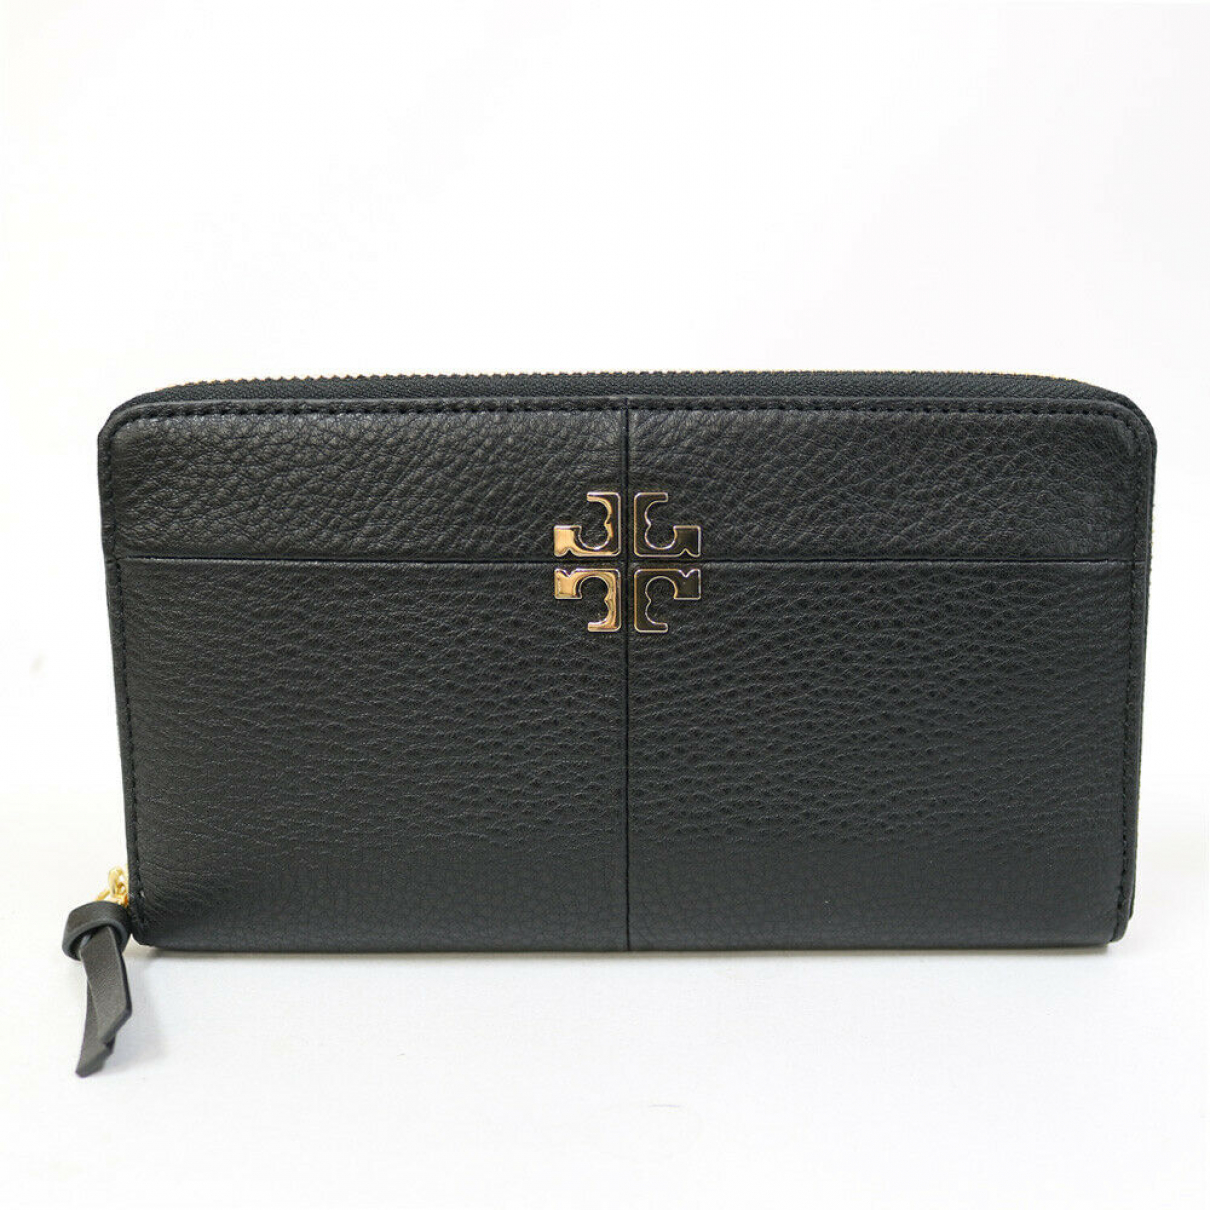 Tory Burch N Leather Purses, wallet & cases for Women N